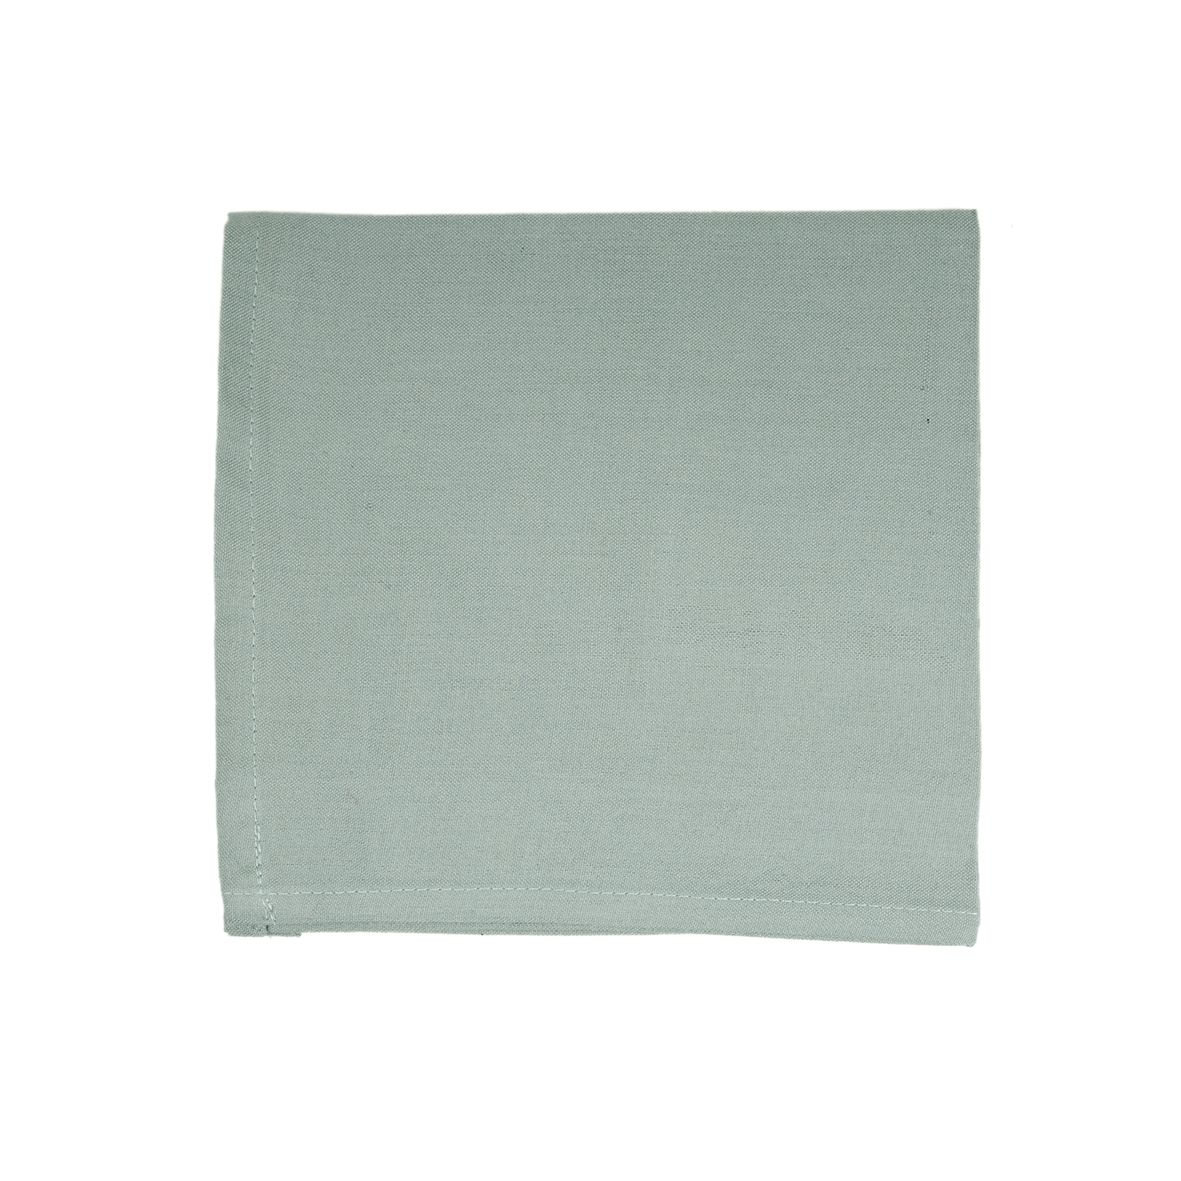 serviette de table coton gris vert dille kamille depuis 1974. Black Bedroom Furniture Sets. Home Design Ideas